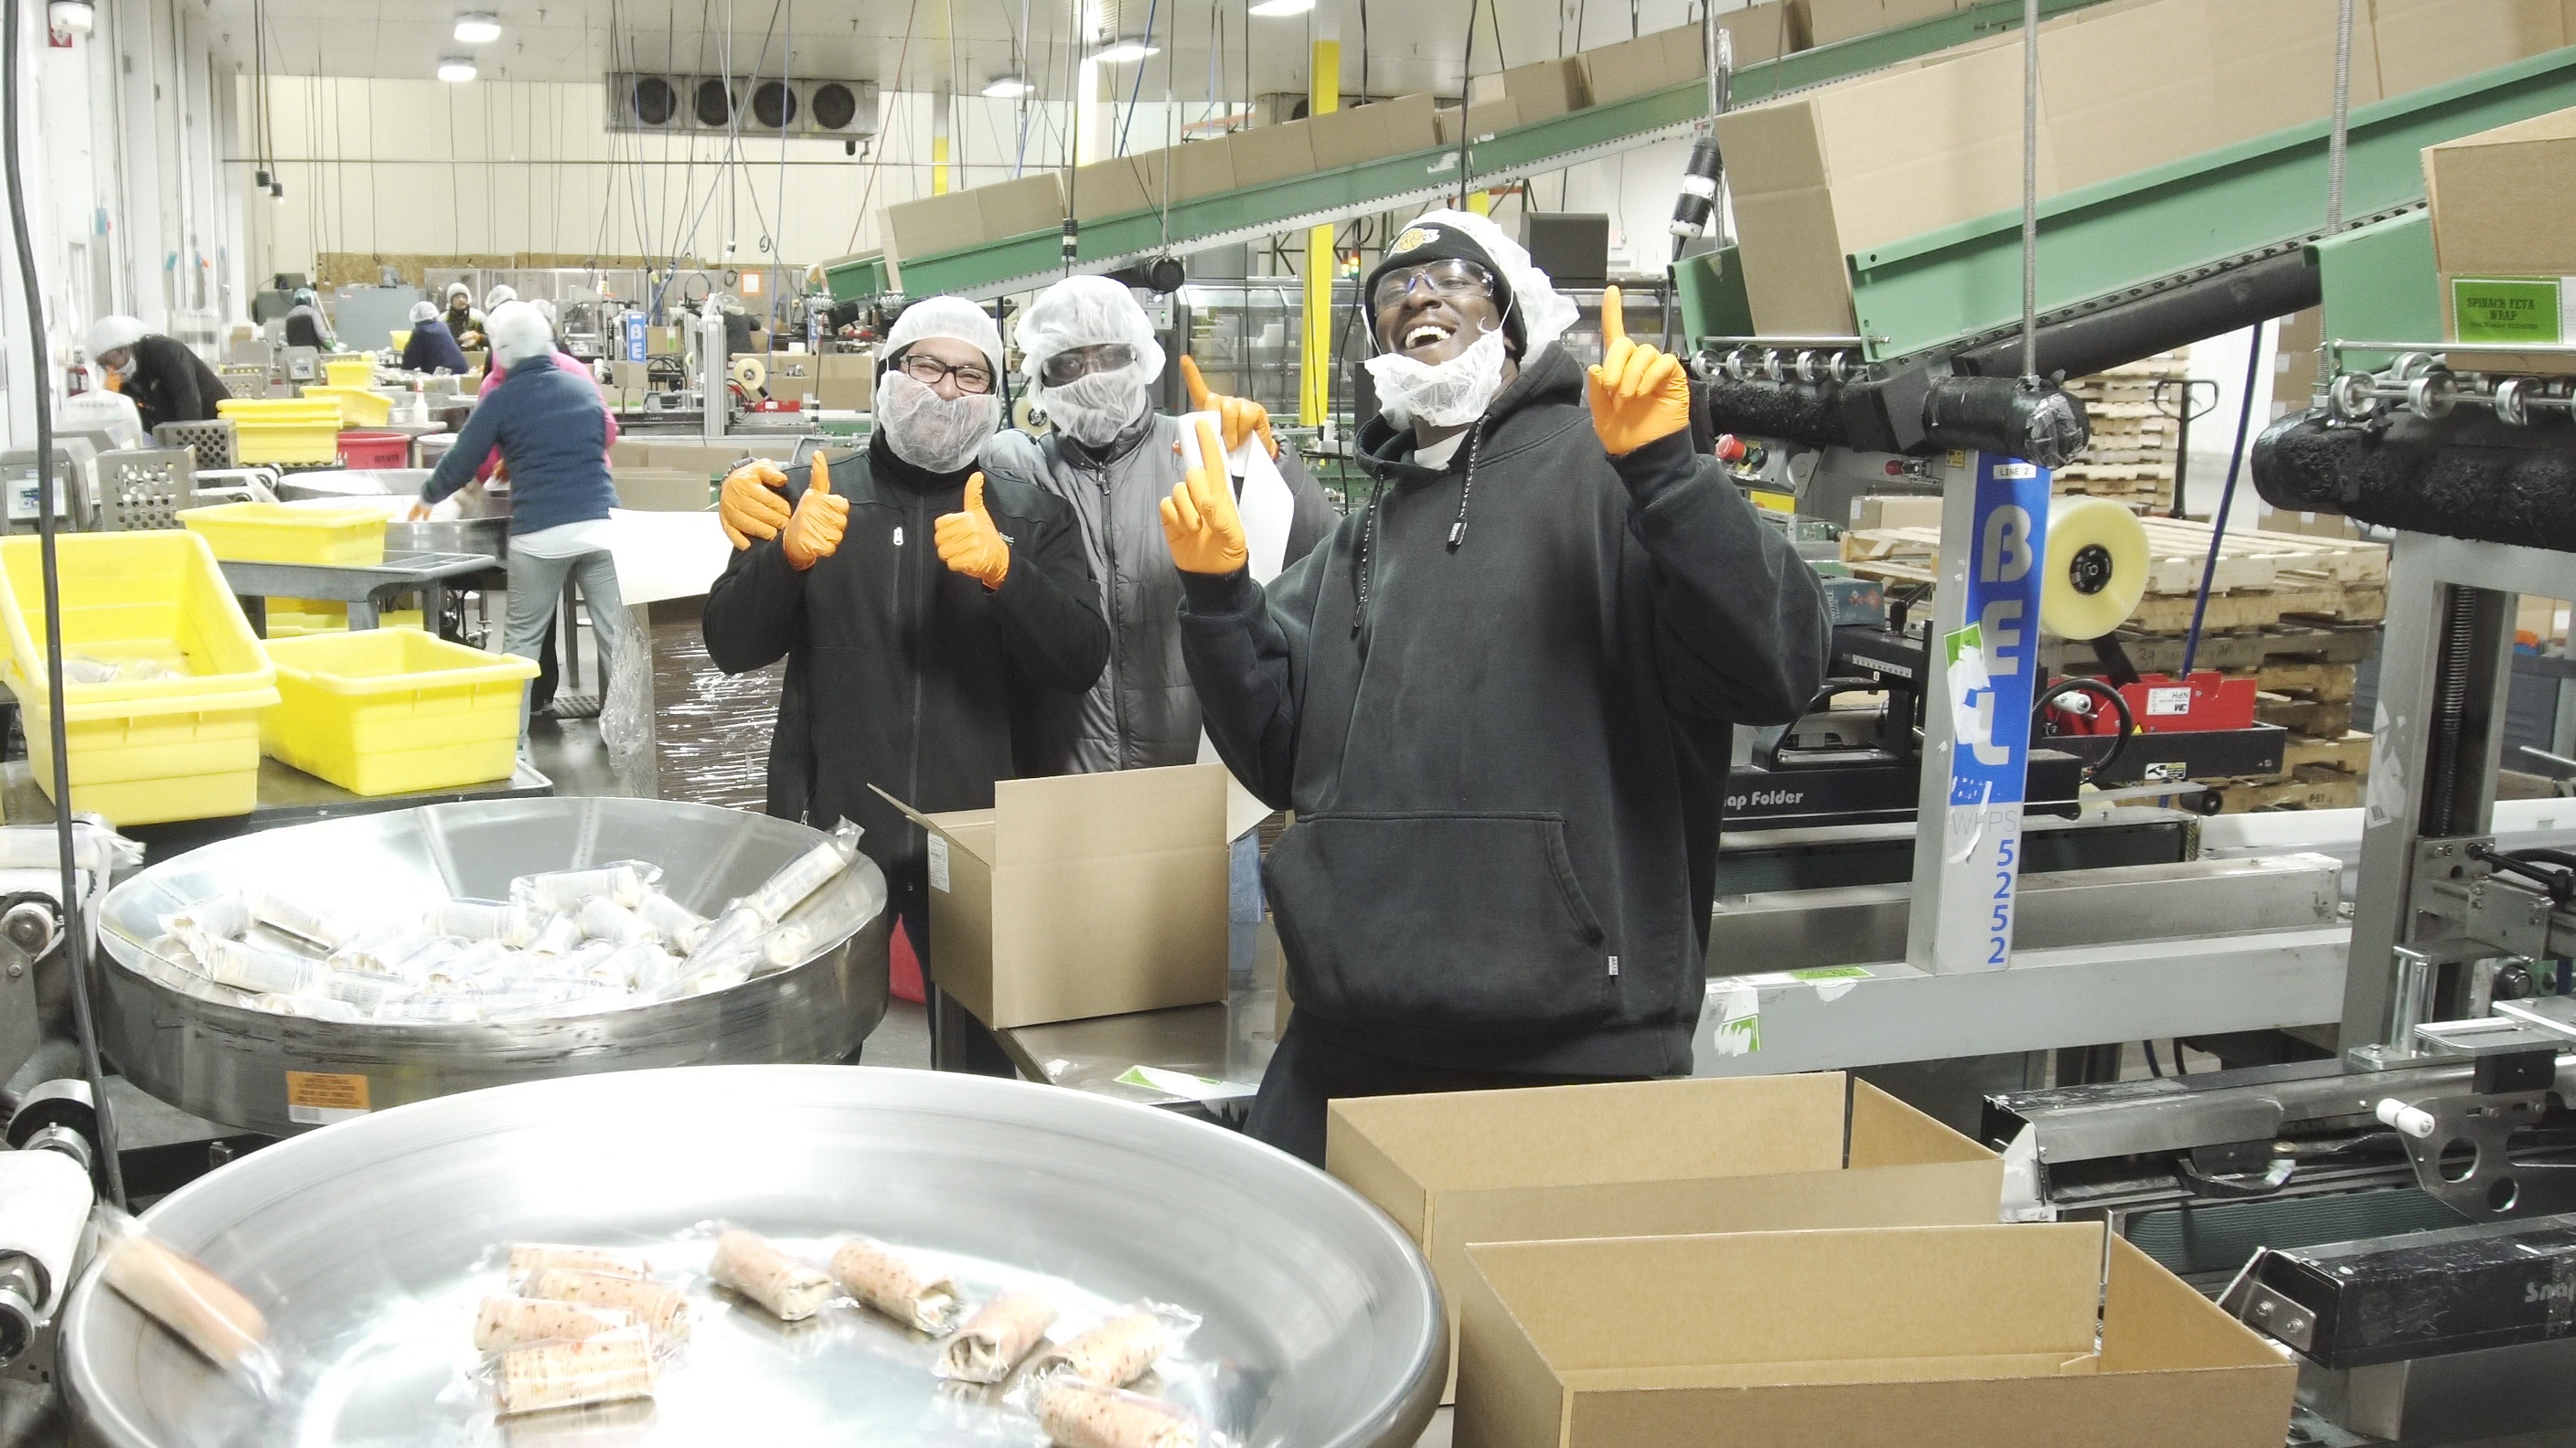 Contract manufacturing workers give the thumbs up while packing goods